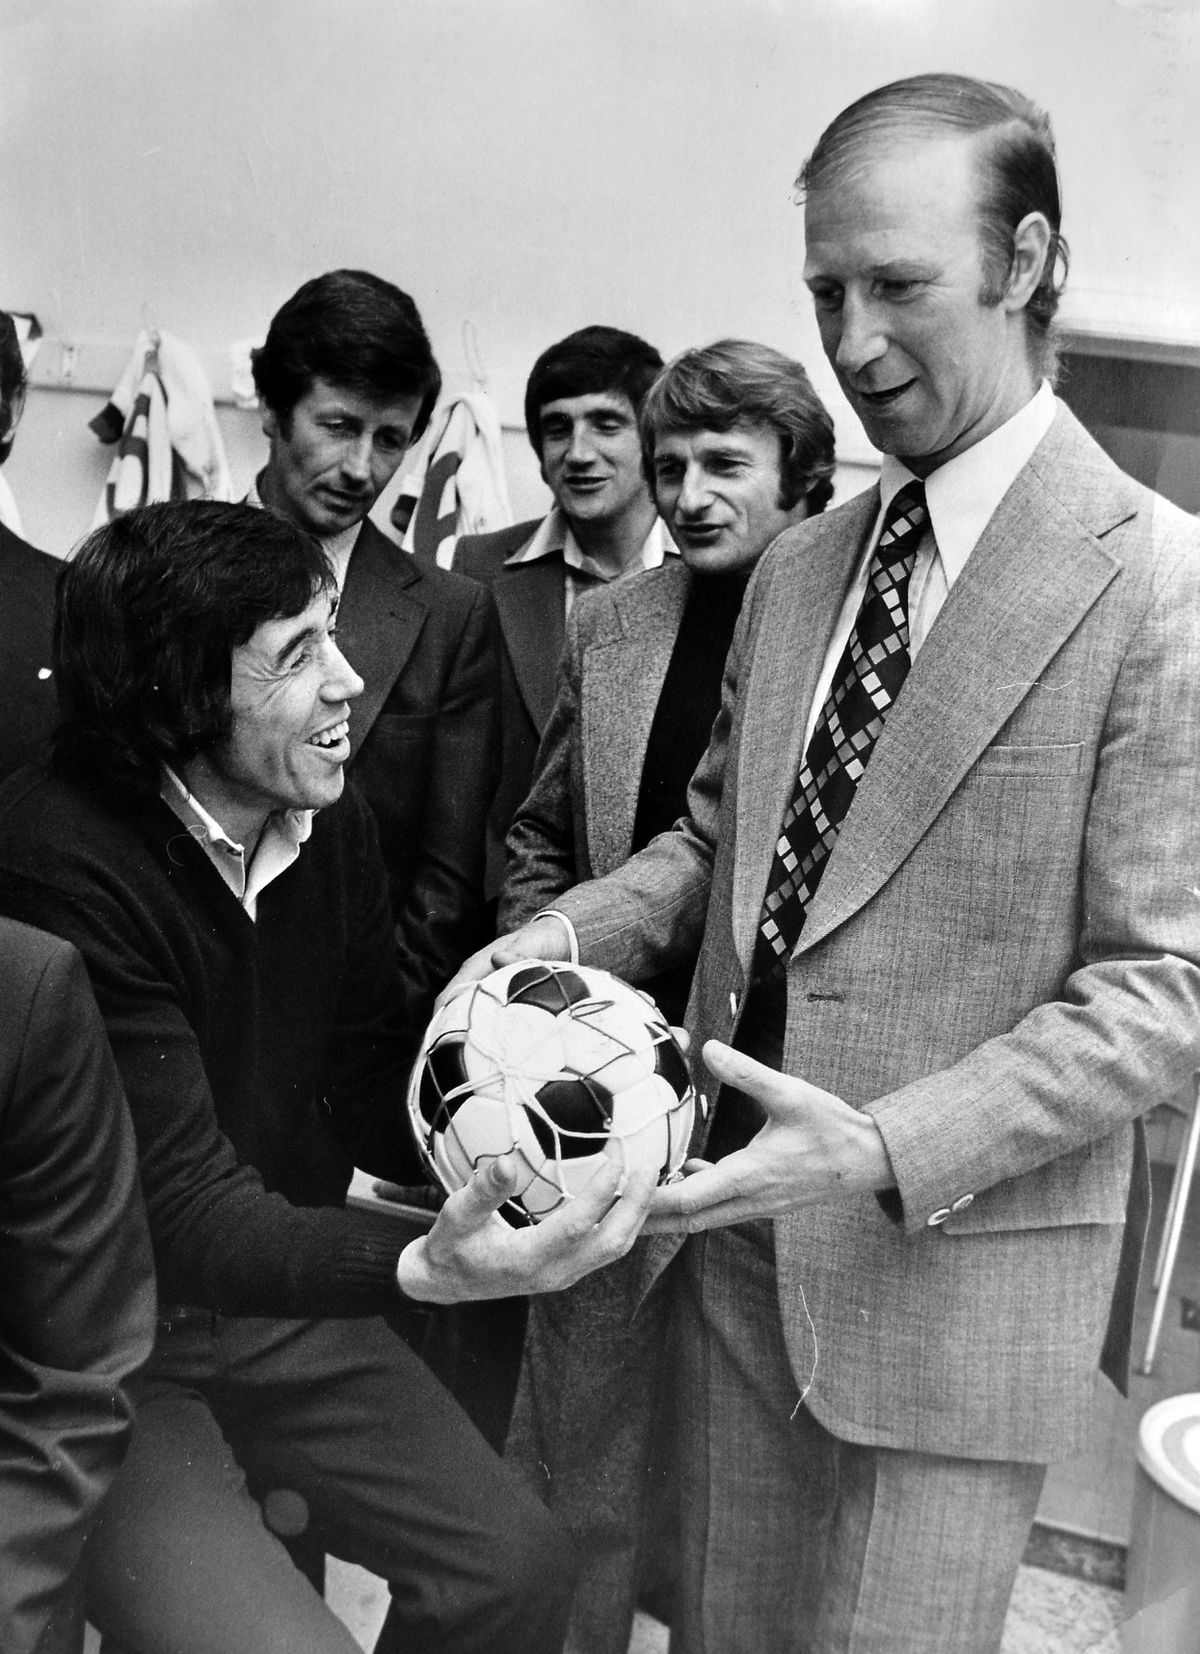 Gordon Banks, seated left, pictured in the Bucks Head dressing room for the centenary of Telford United in 1976. Also pictured are Roger Hunt, Norman Hunter, referee Bert Newsom and Jack Charlton, right